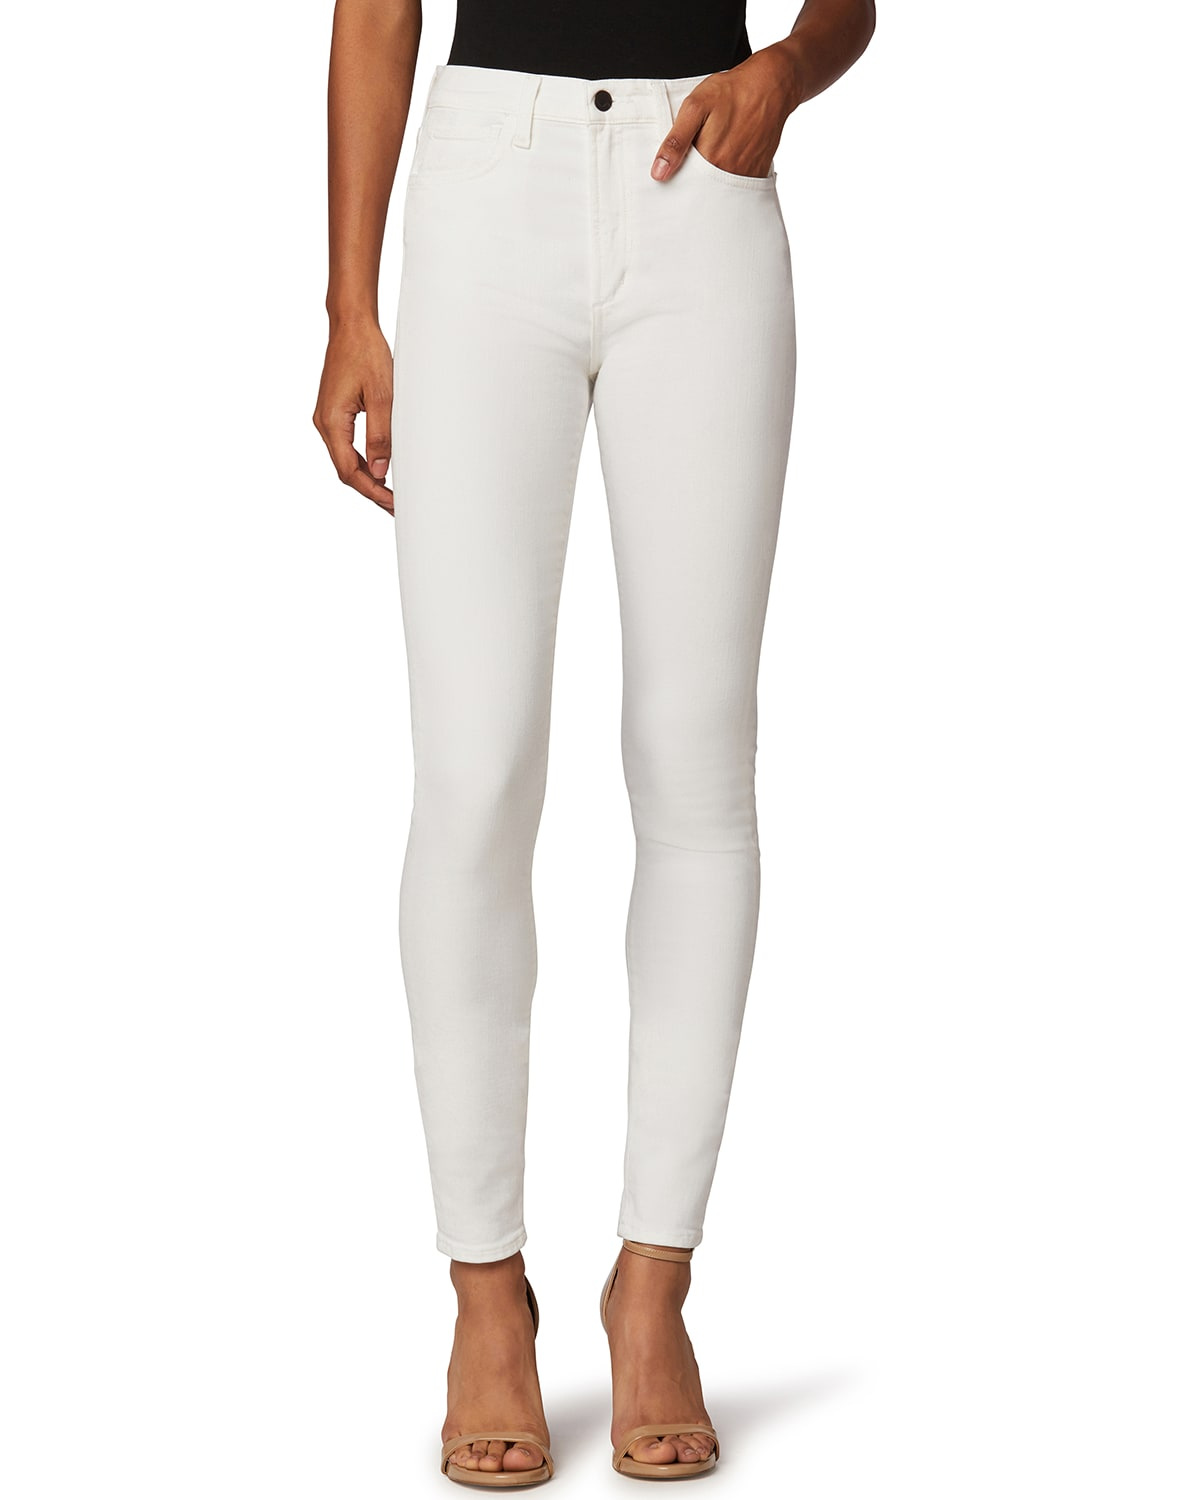 The Twiggy High-Rise Jeans